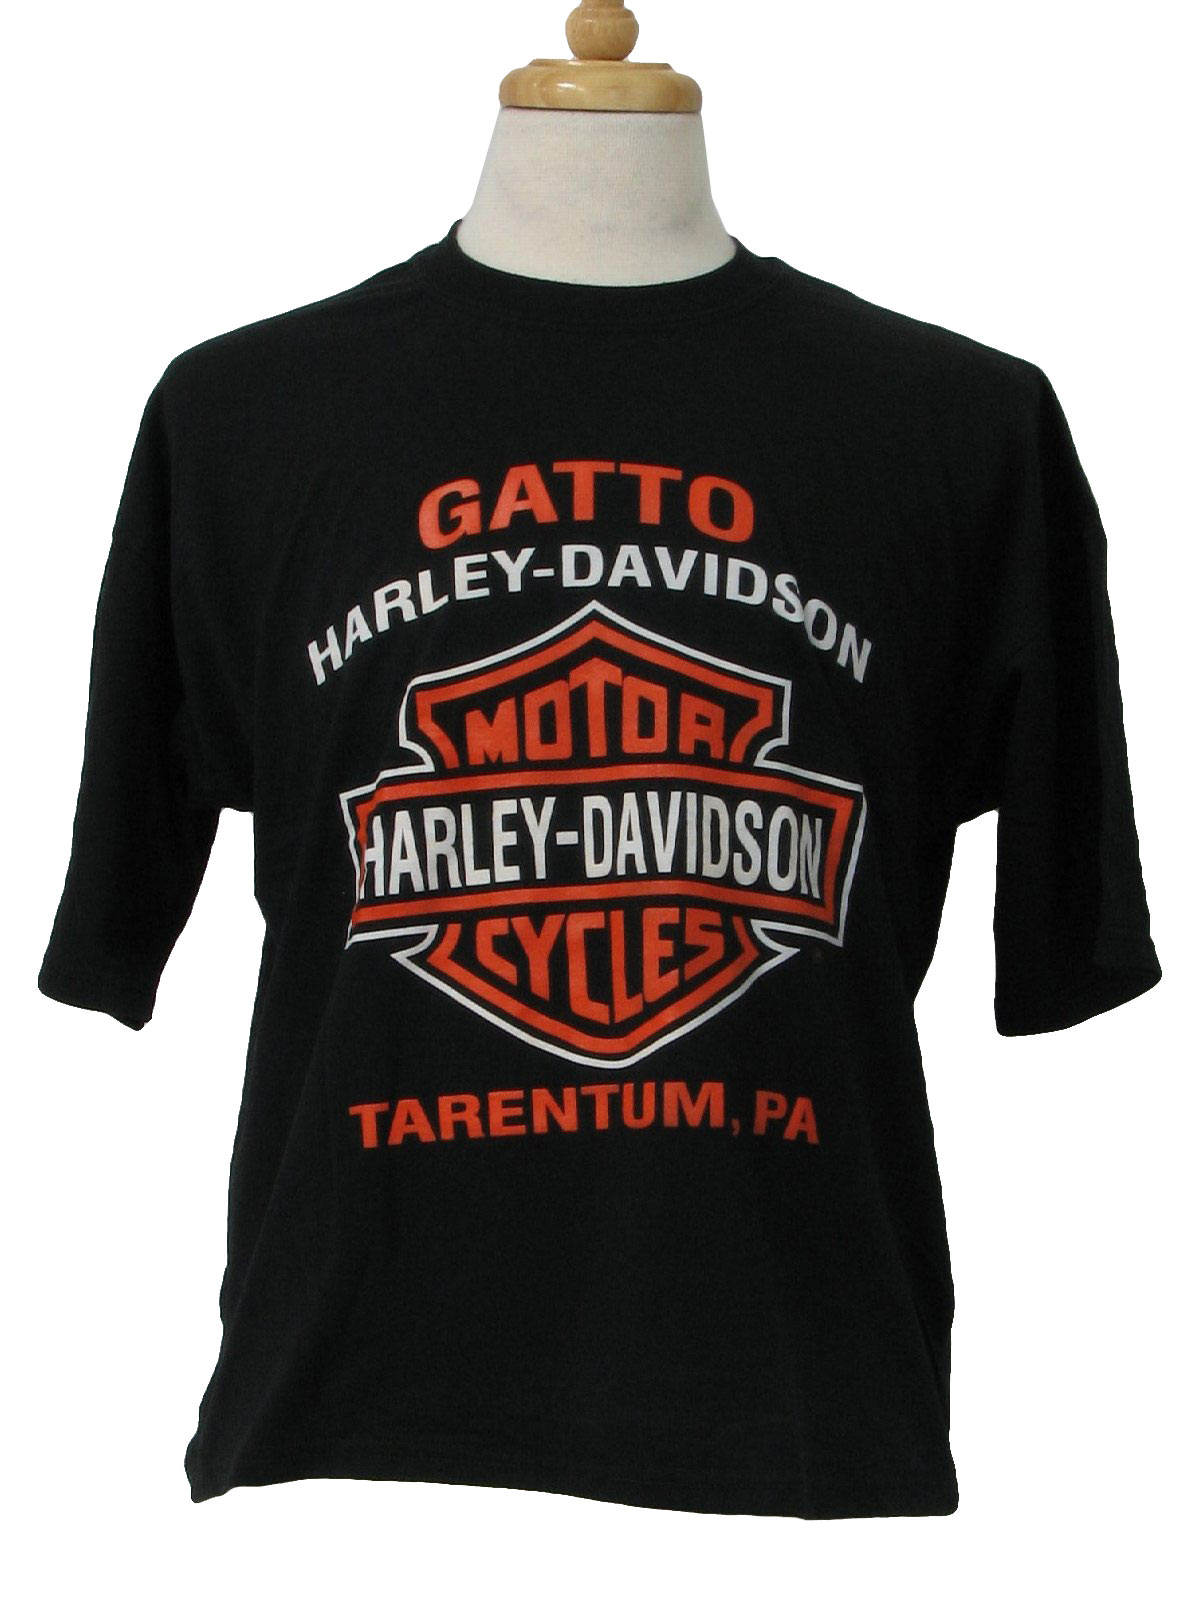 T Shirt: 90s -jerzees- black, white and orange -Gatto Harley ...